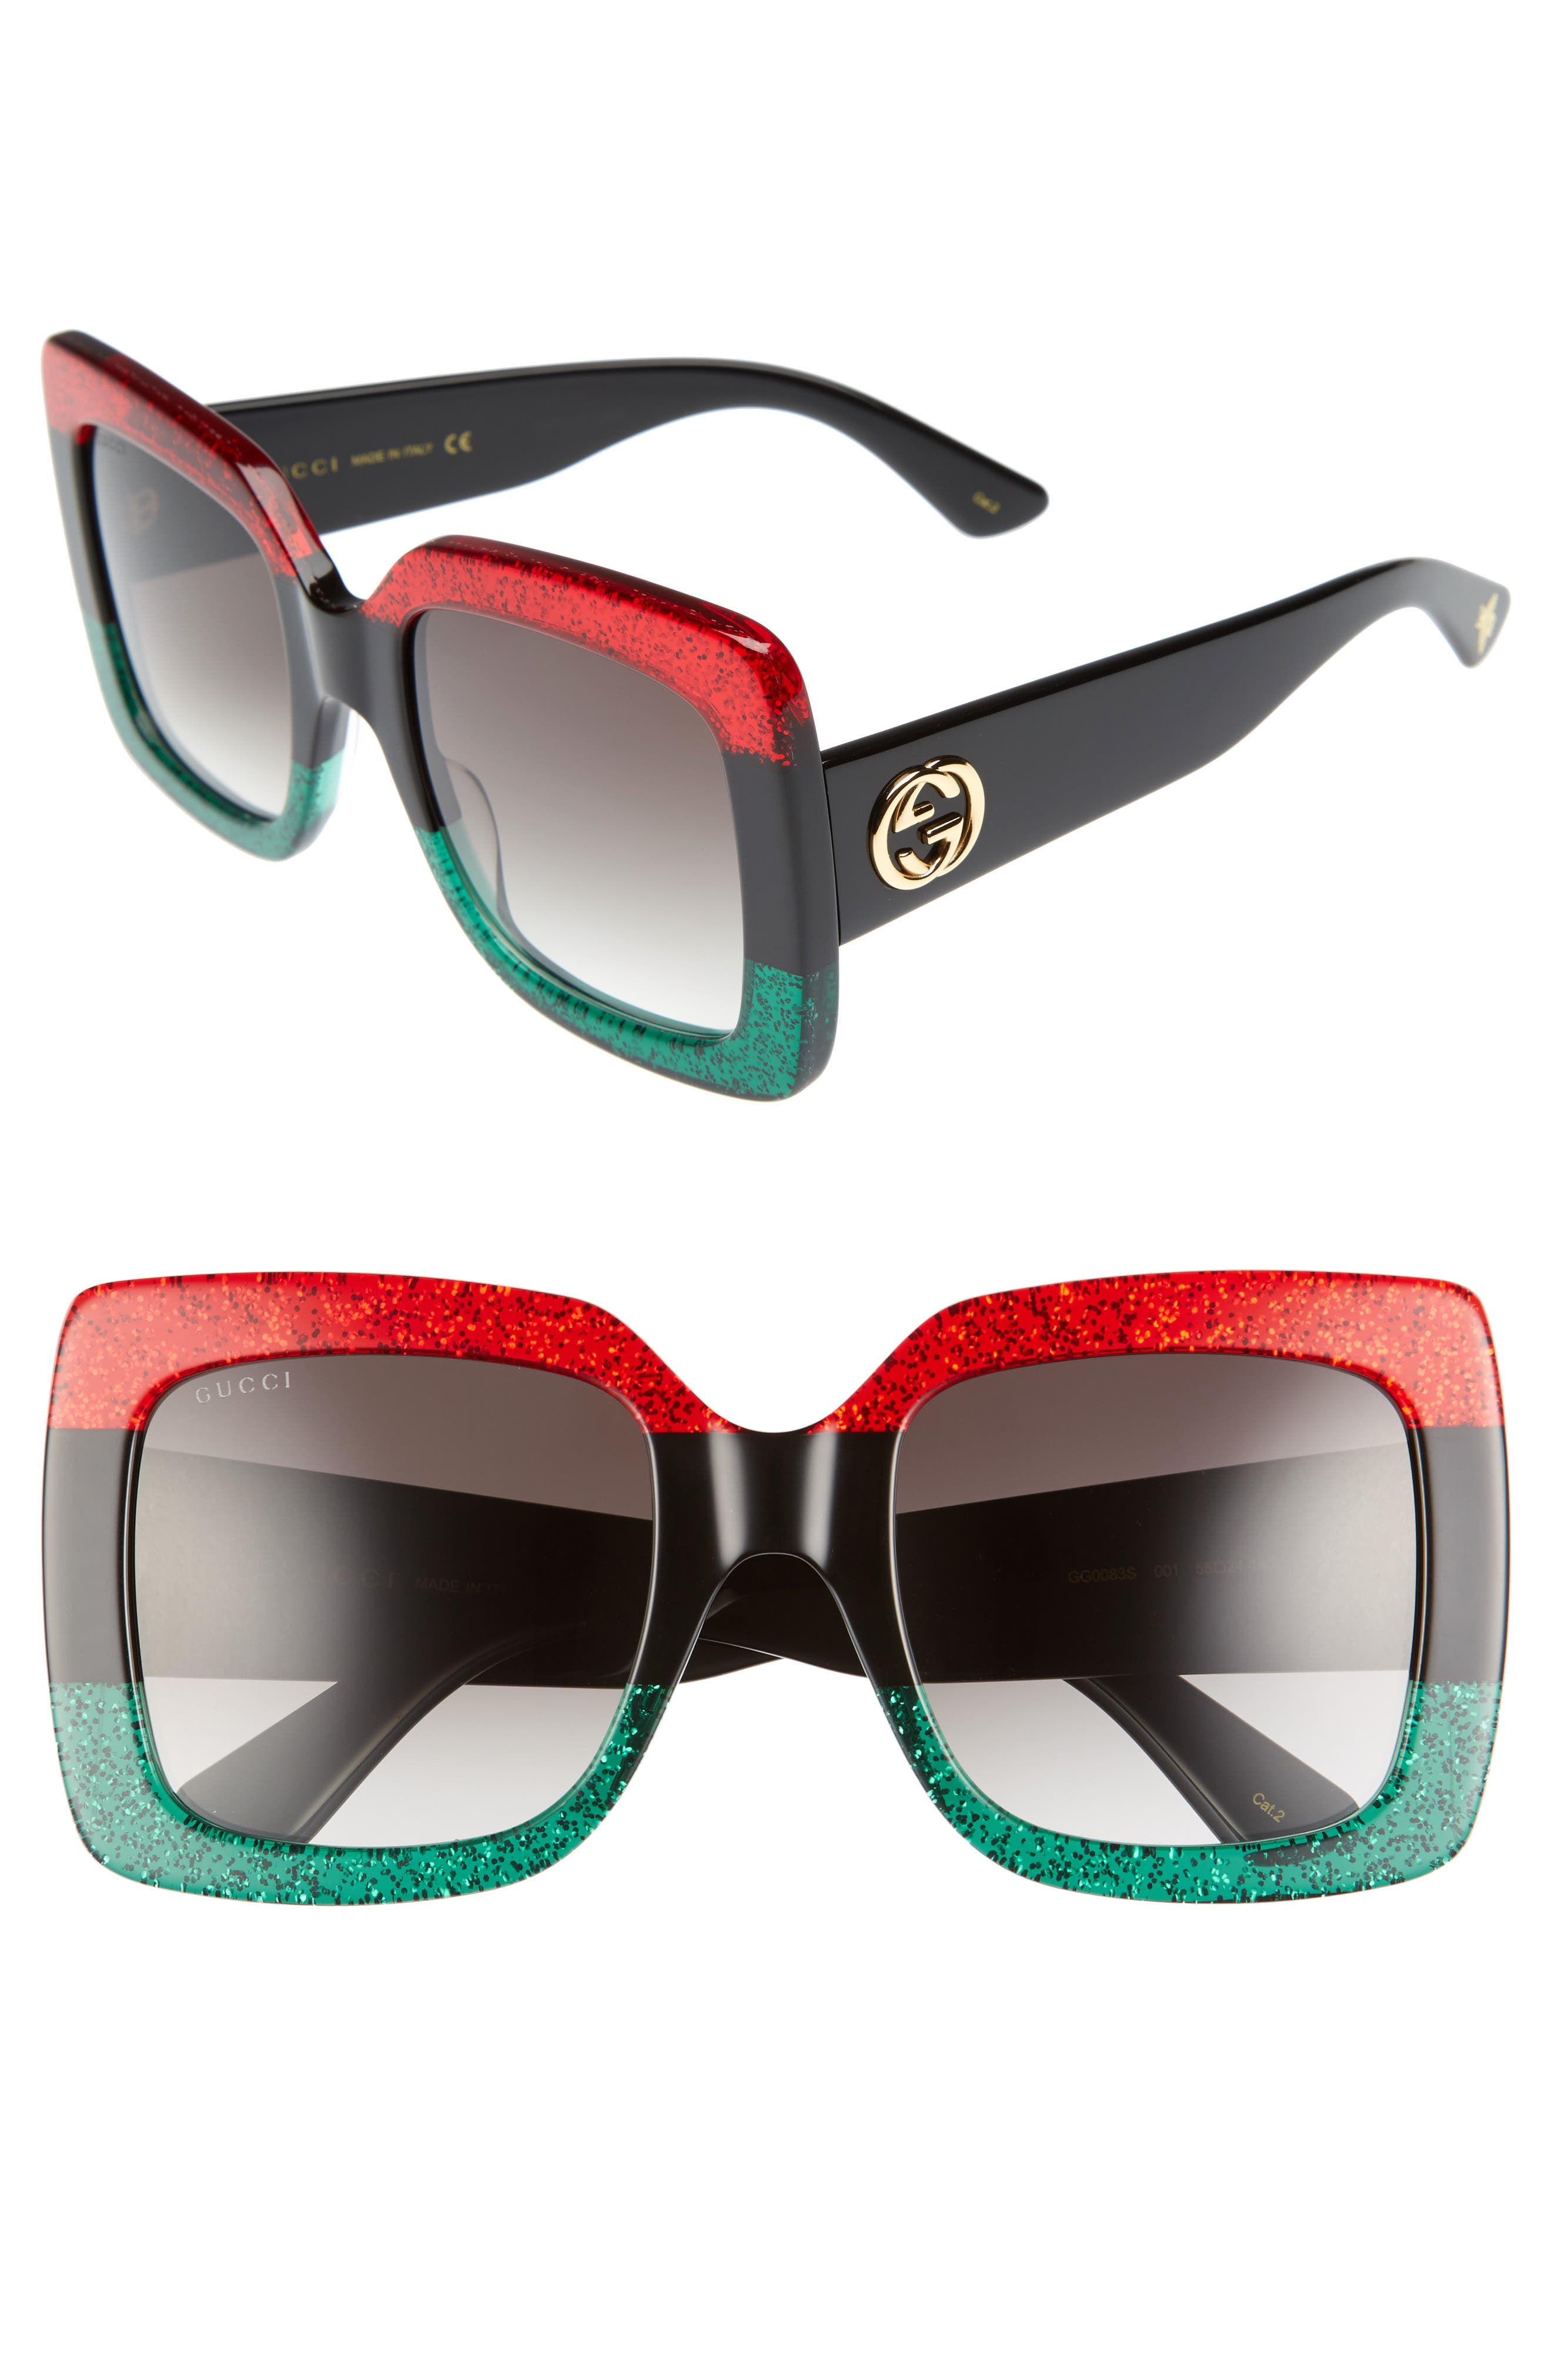 55mm Square Sunglasses,                             Main thumbnail 1, color,                             Red Black Green/ Grey